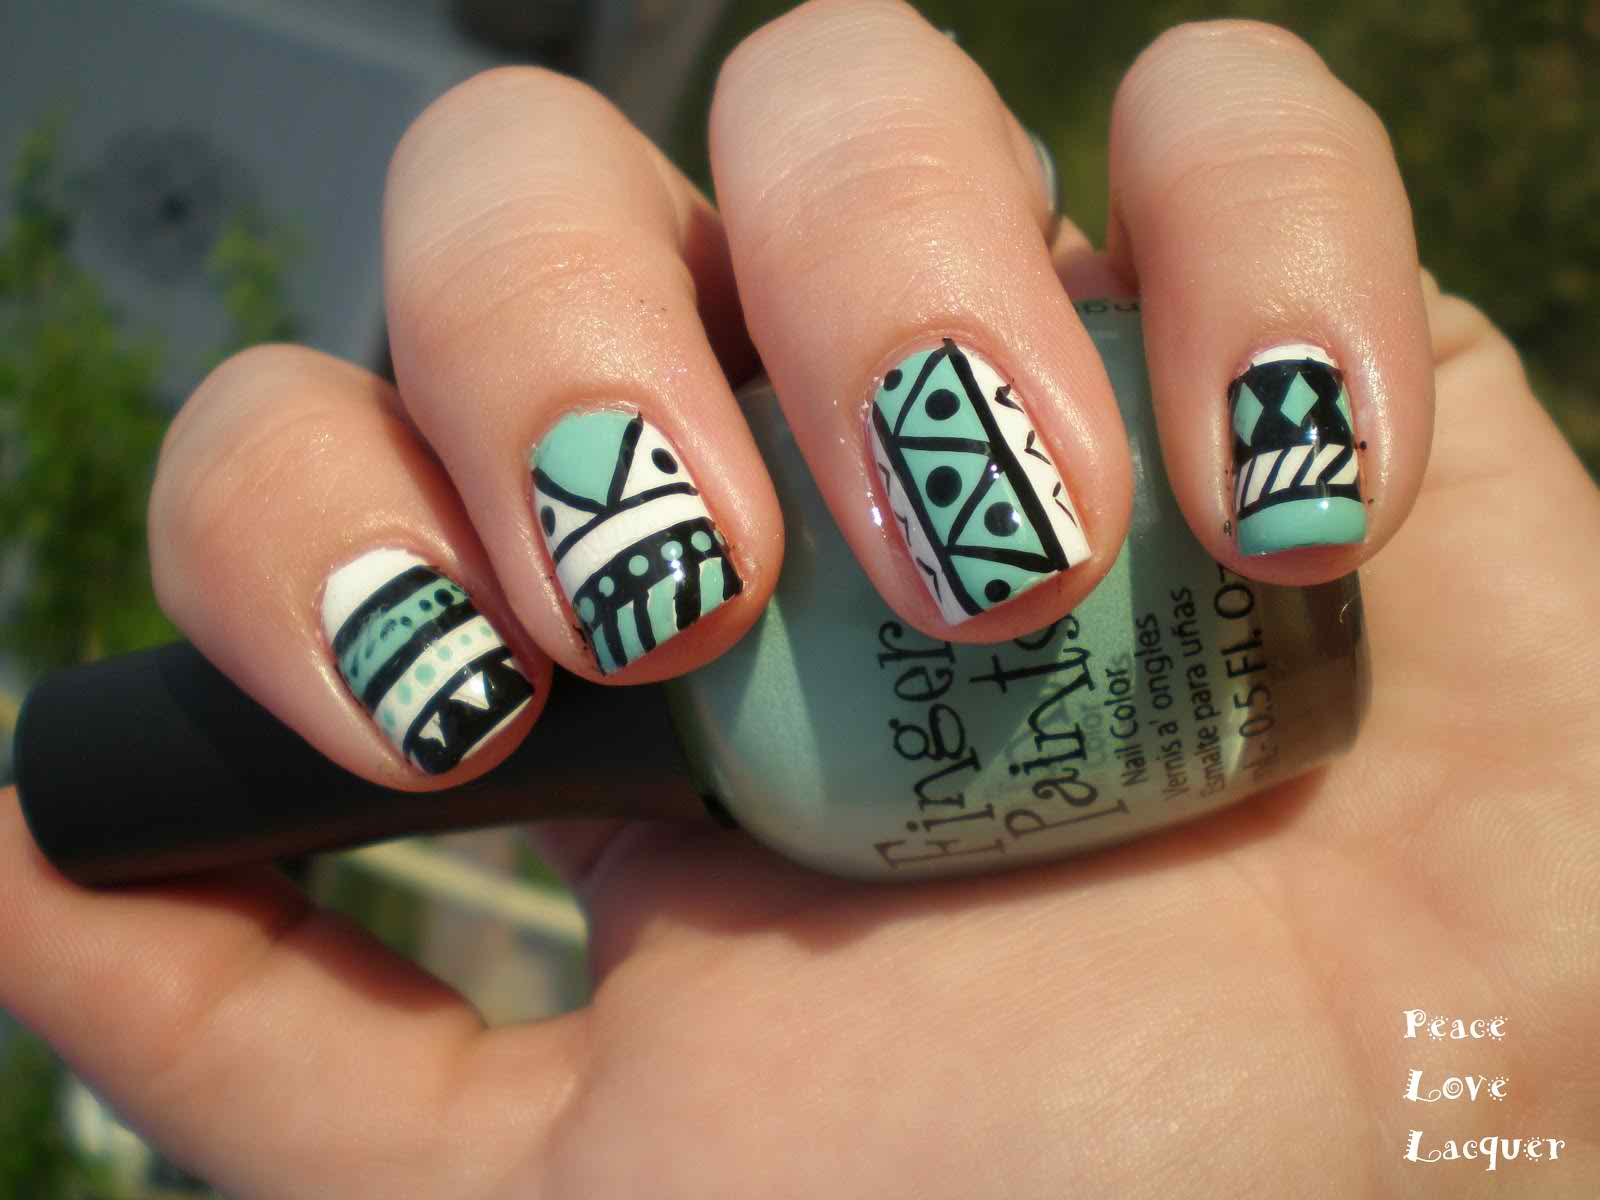 Trends Of Tribal Nail Art Designs 2014-2015 For Women - Life n Fashion